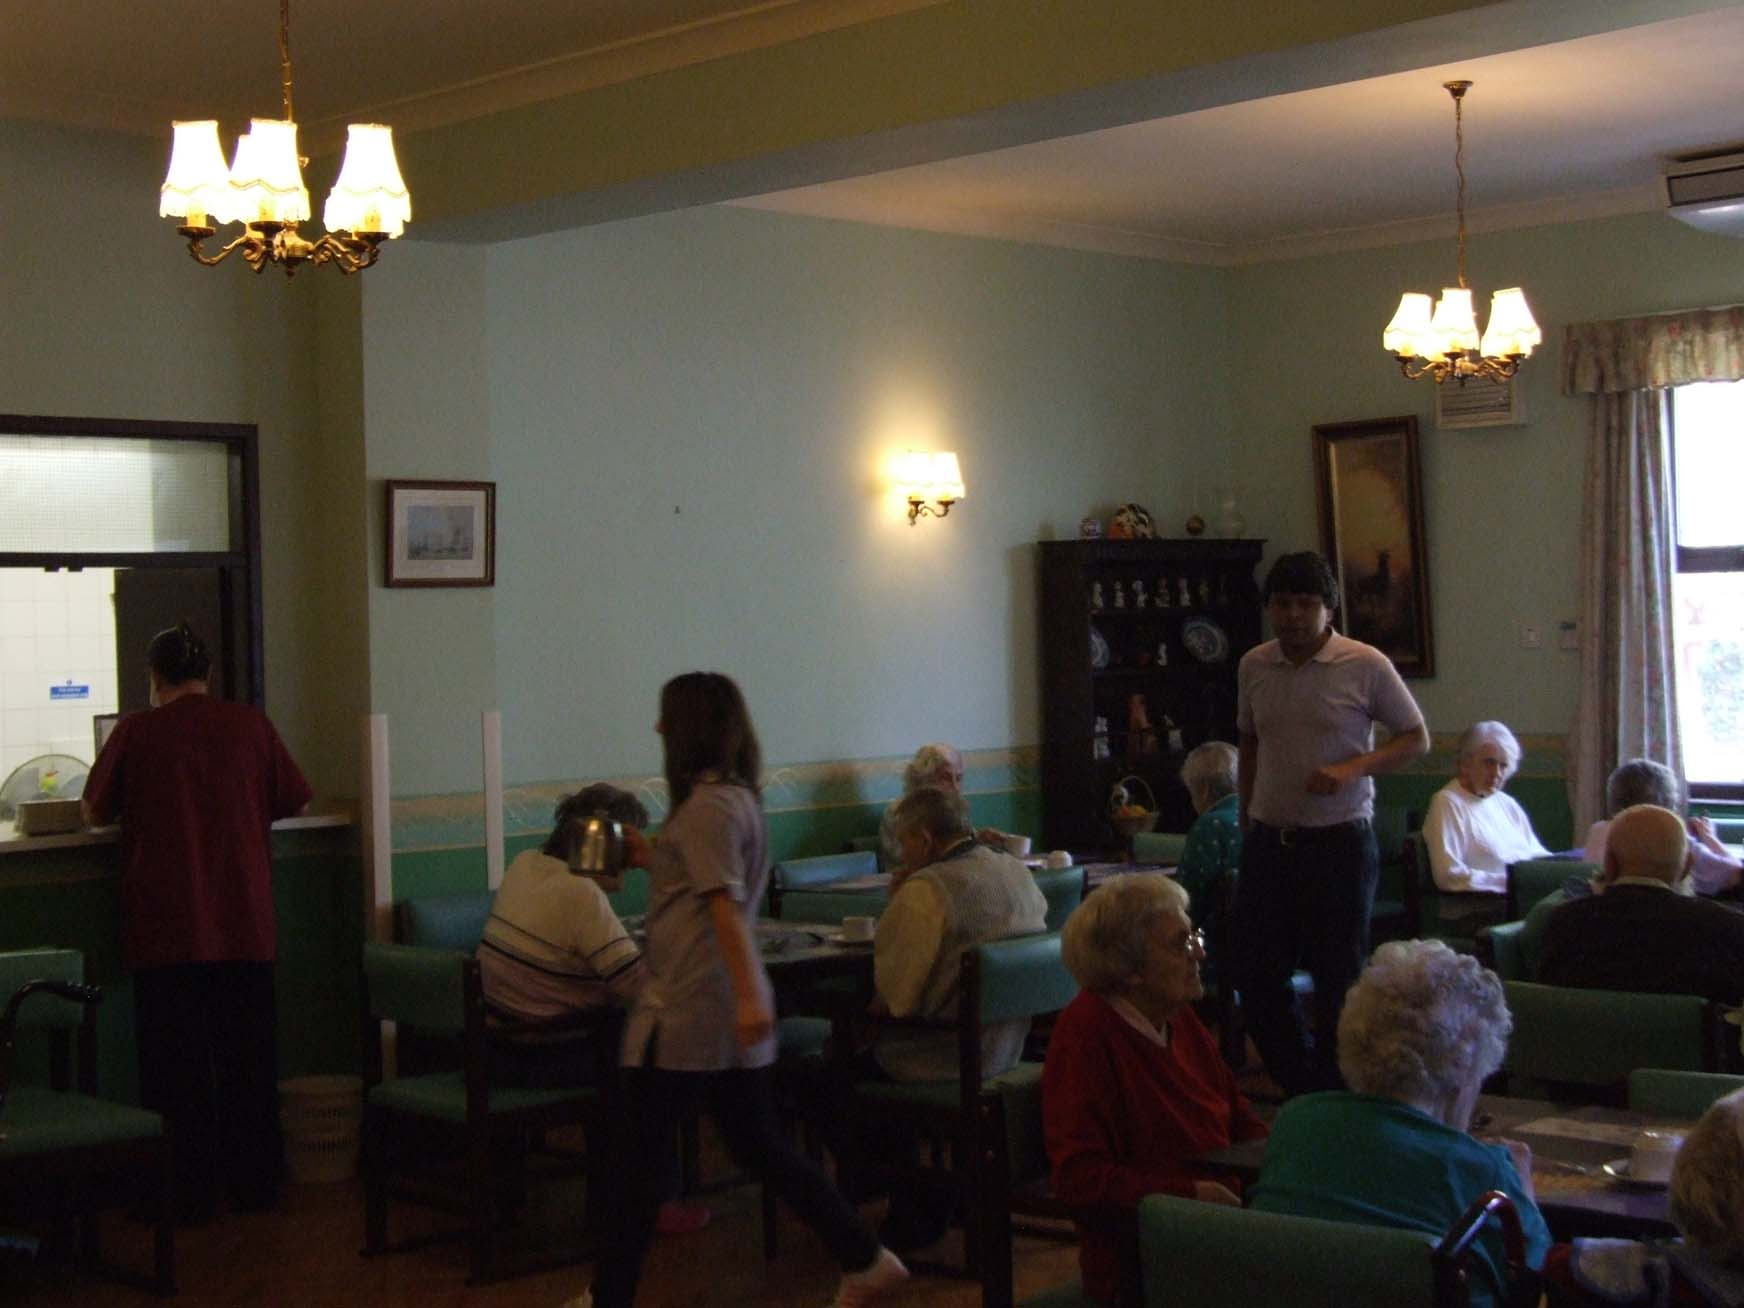 Charnley house nursing care home Hyde dining room